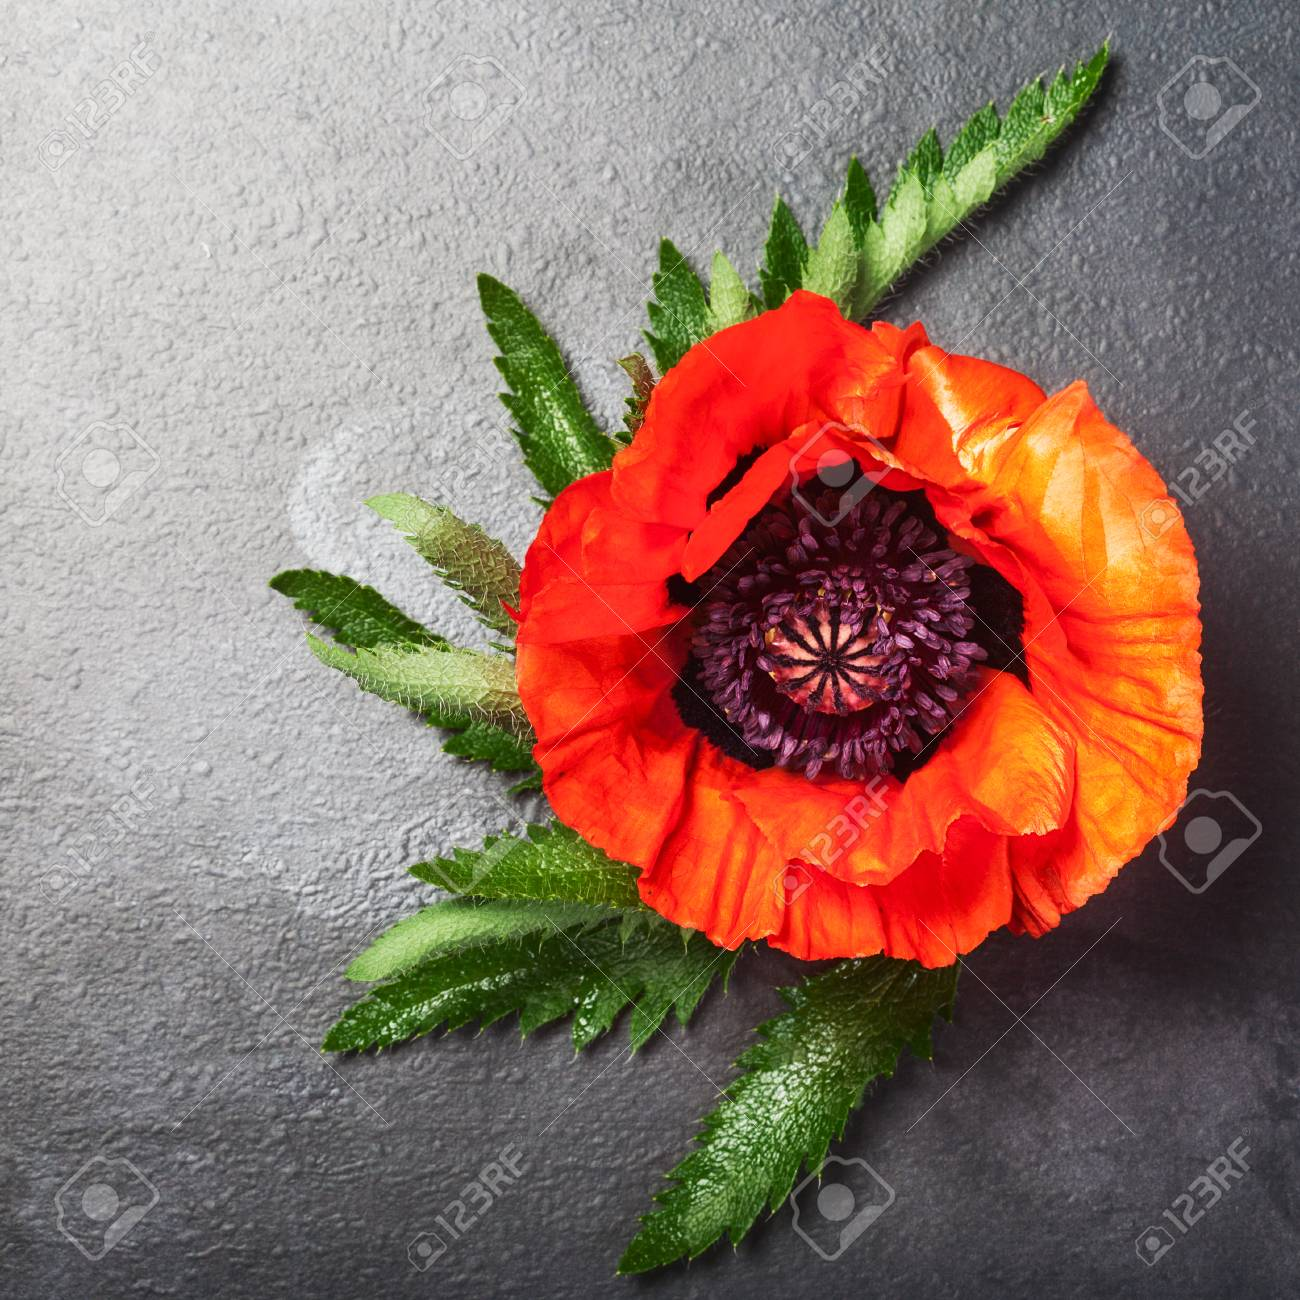 Red poppy flower with leaves on dark background summer garden red poppy flower with leaves on dark background summer garden flowers top view mightylinksfo